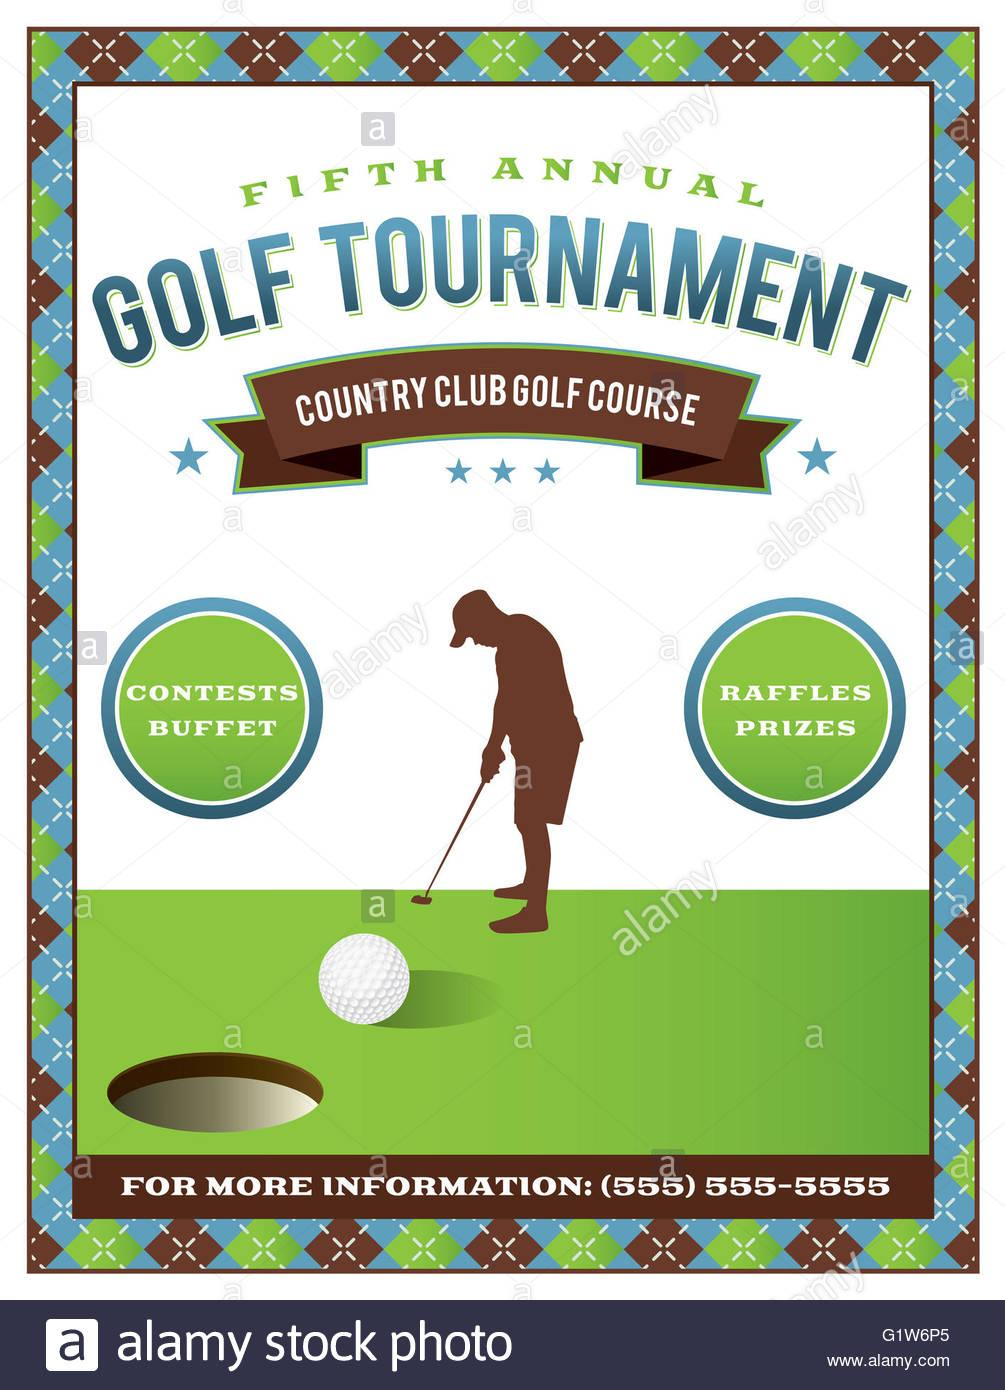 Golf Tournament Invitation Template